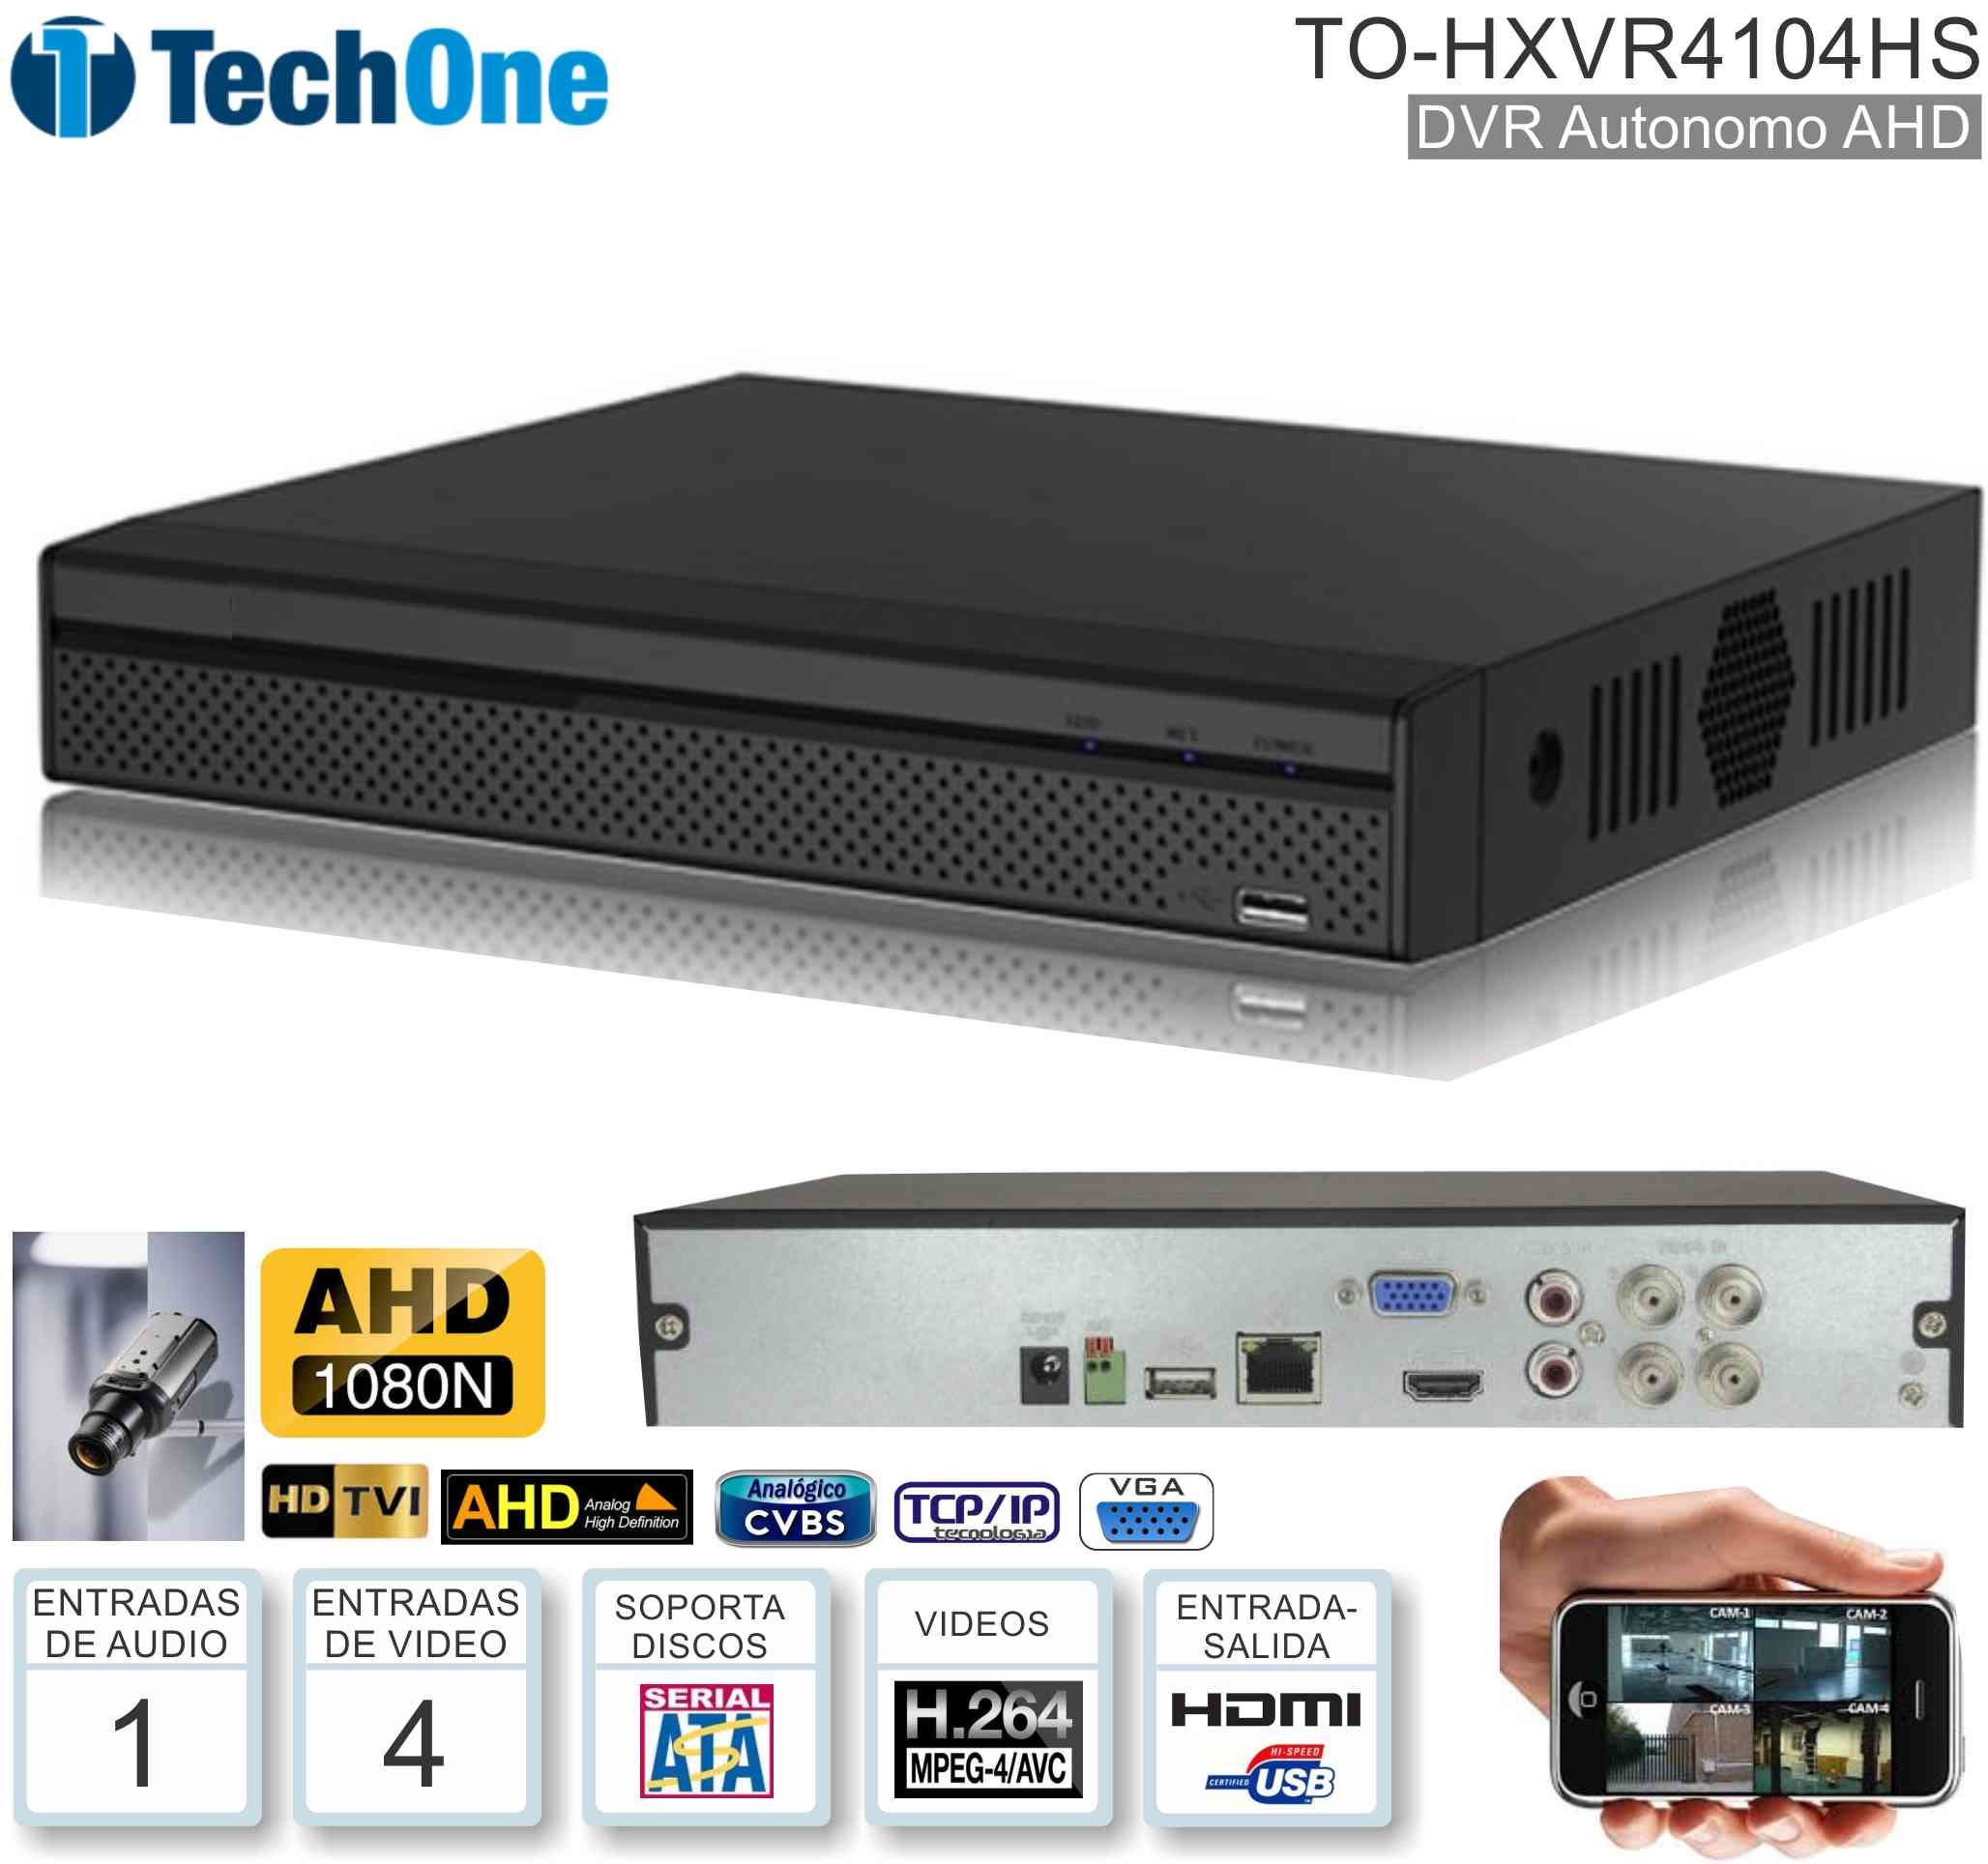 DVR AHD1080 04 Can TECHONE TO-HXVR4104HS